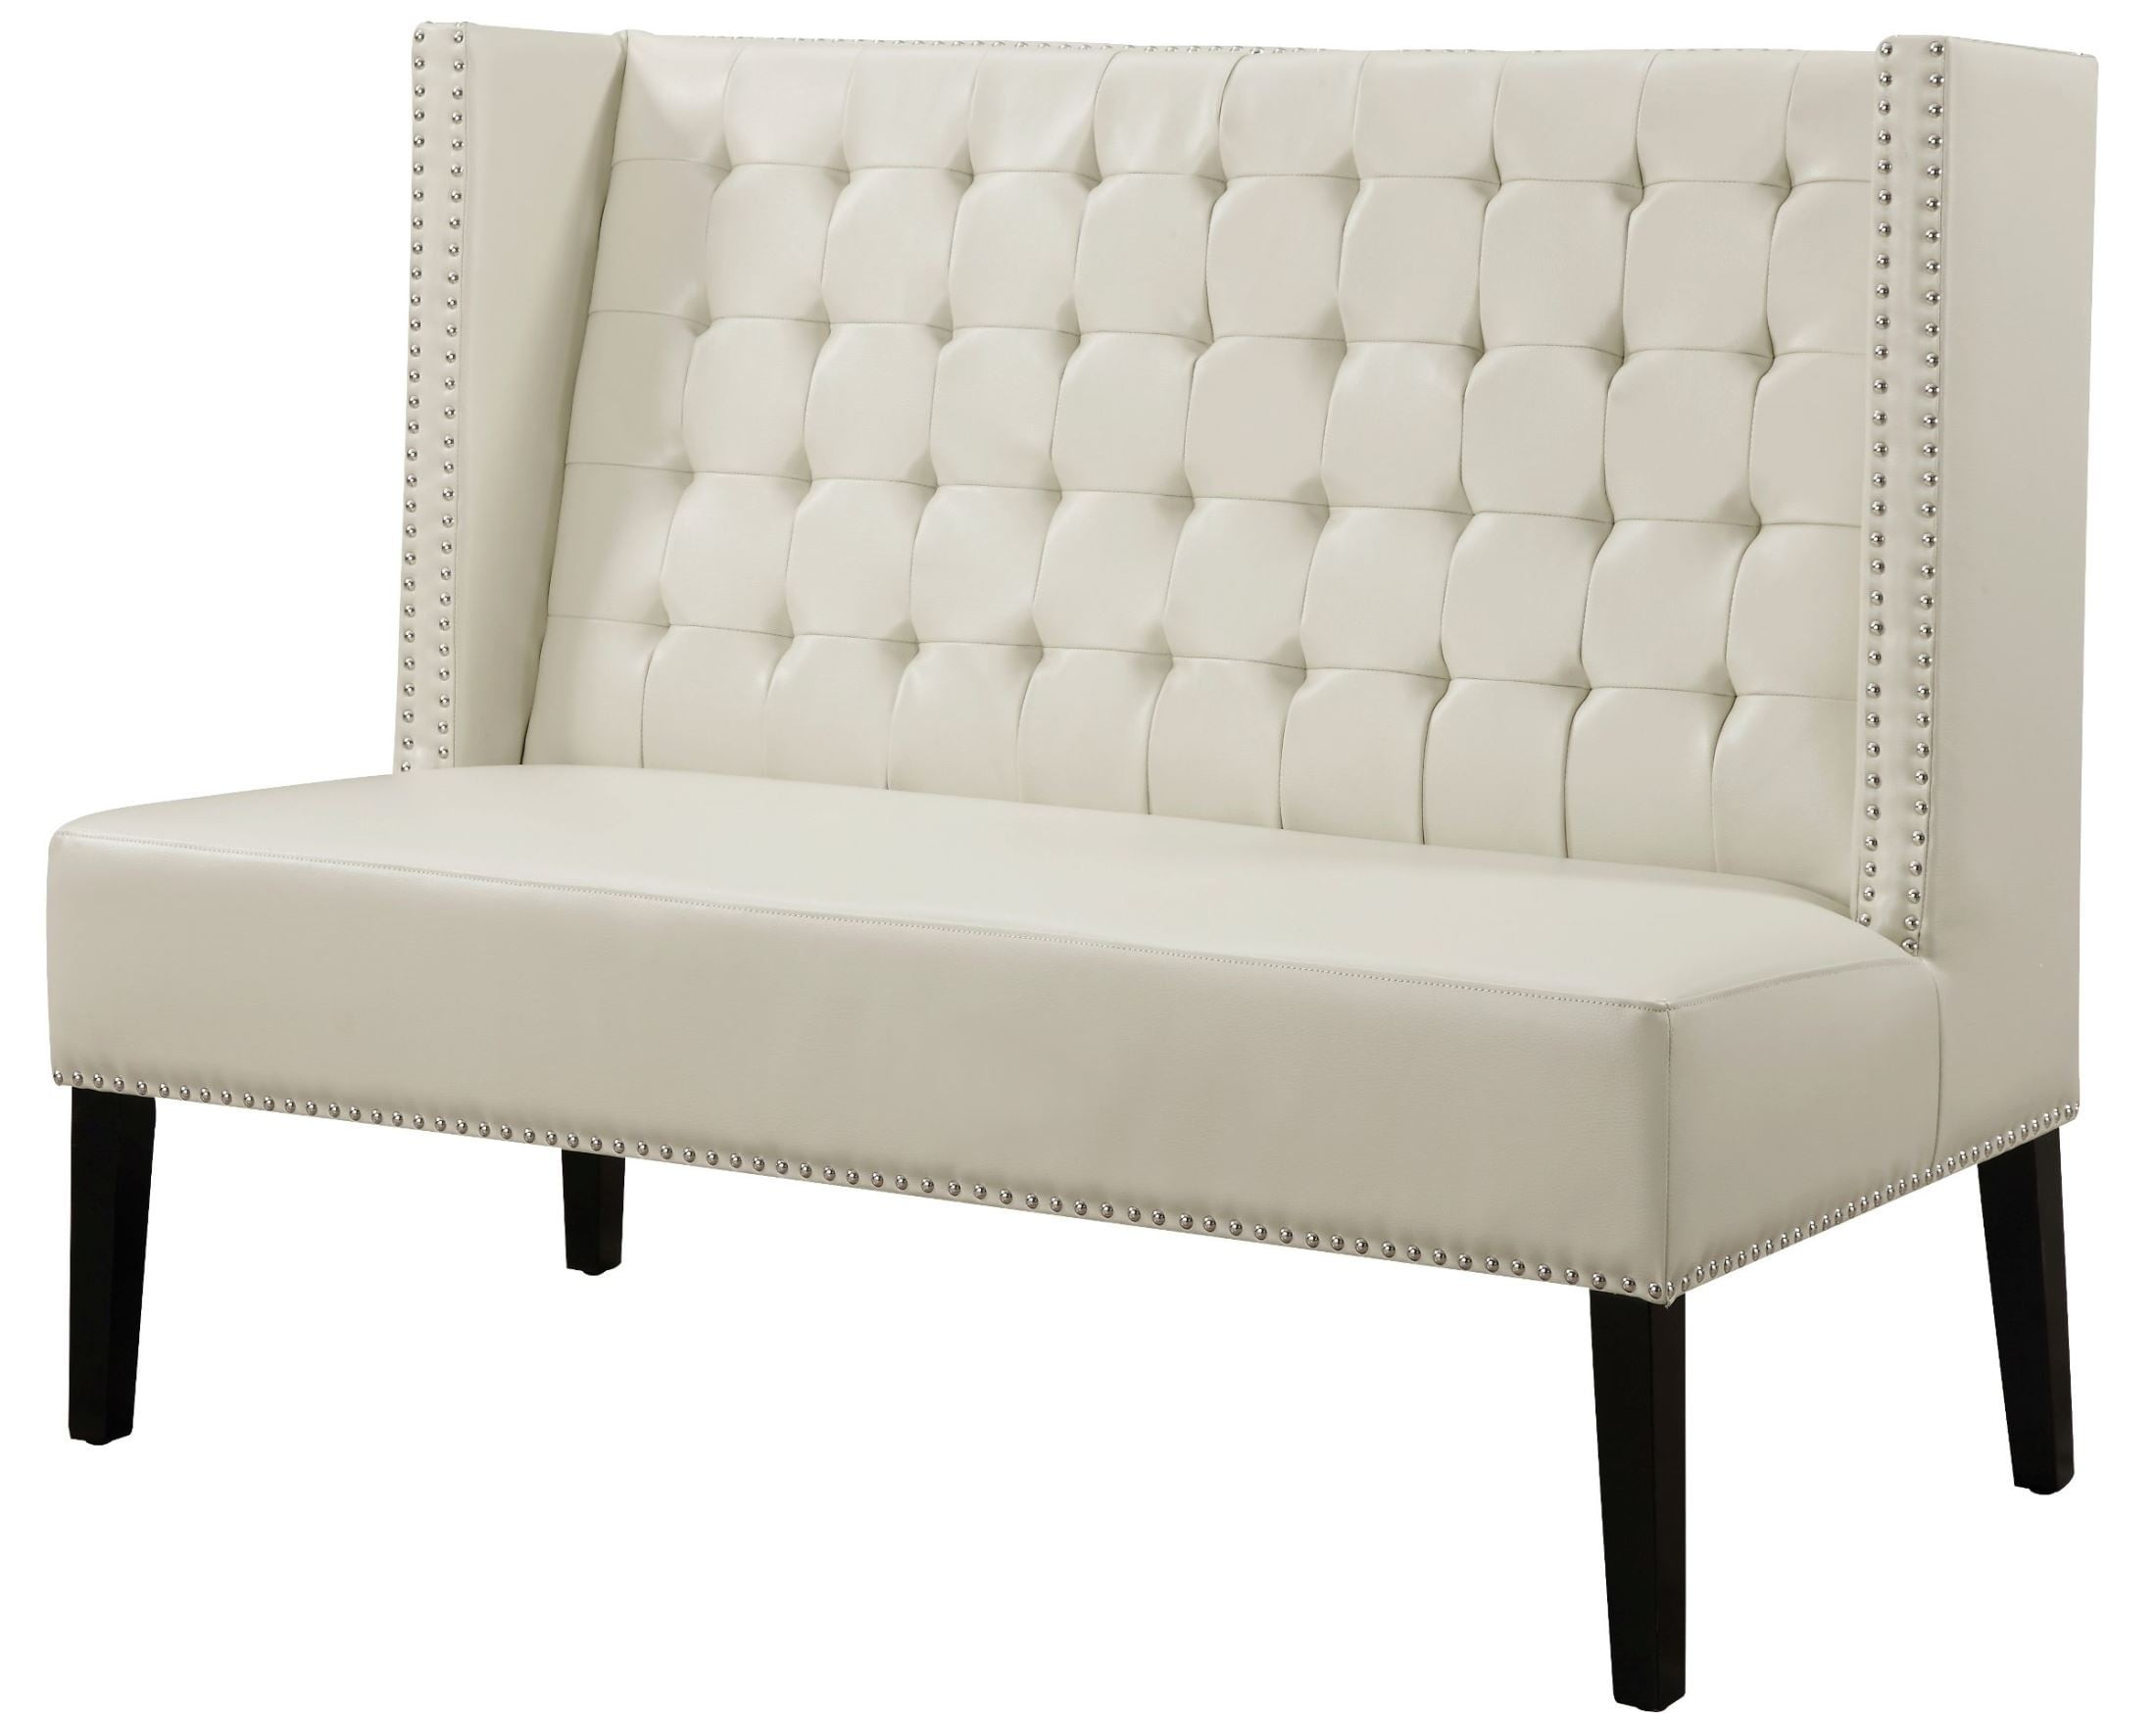 Halifax cream leather banquette bench from tov 63115 Banquette bench